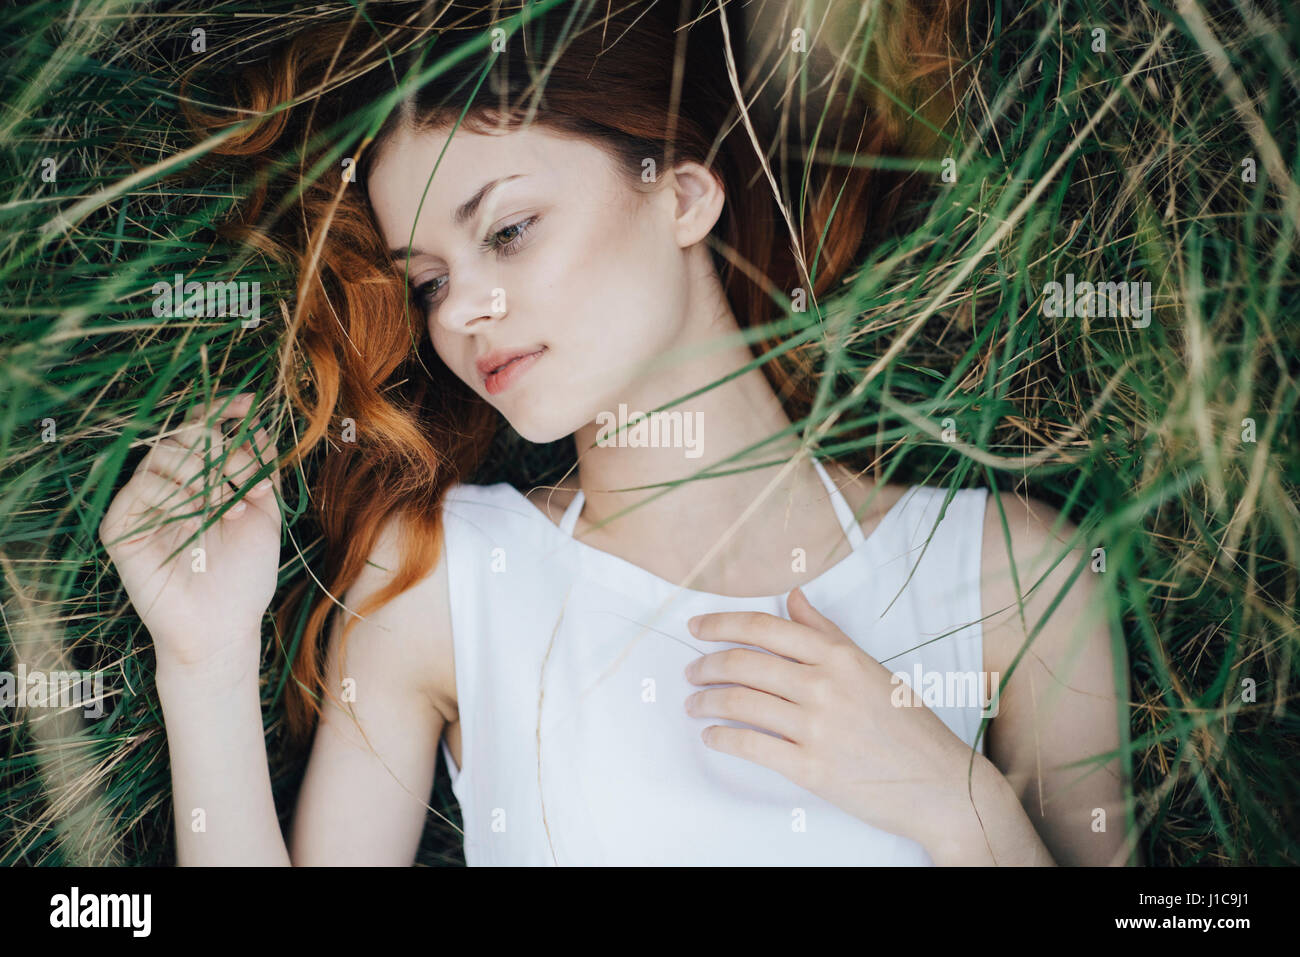 Caucasian woman laying in grass - Stock Image